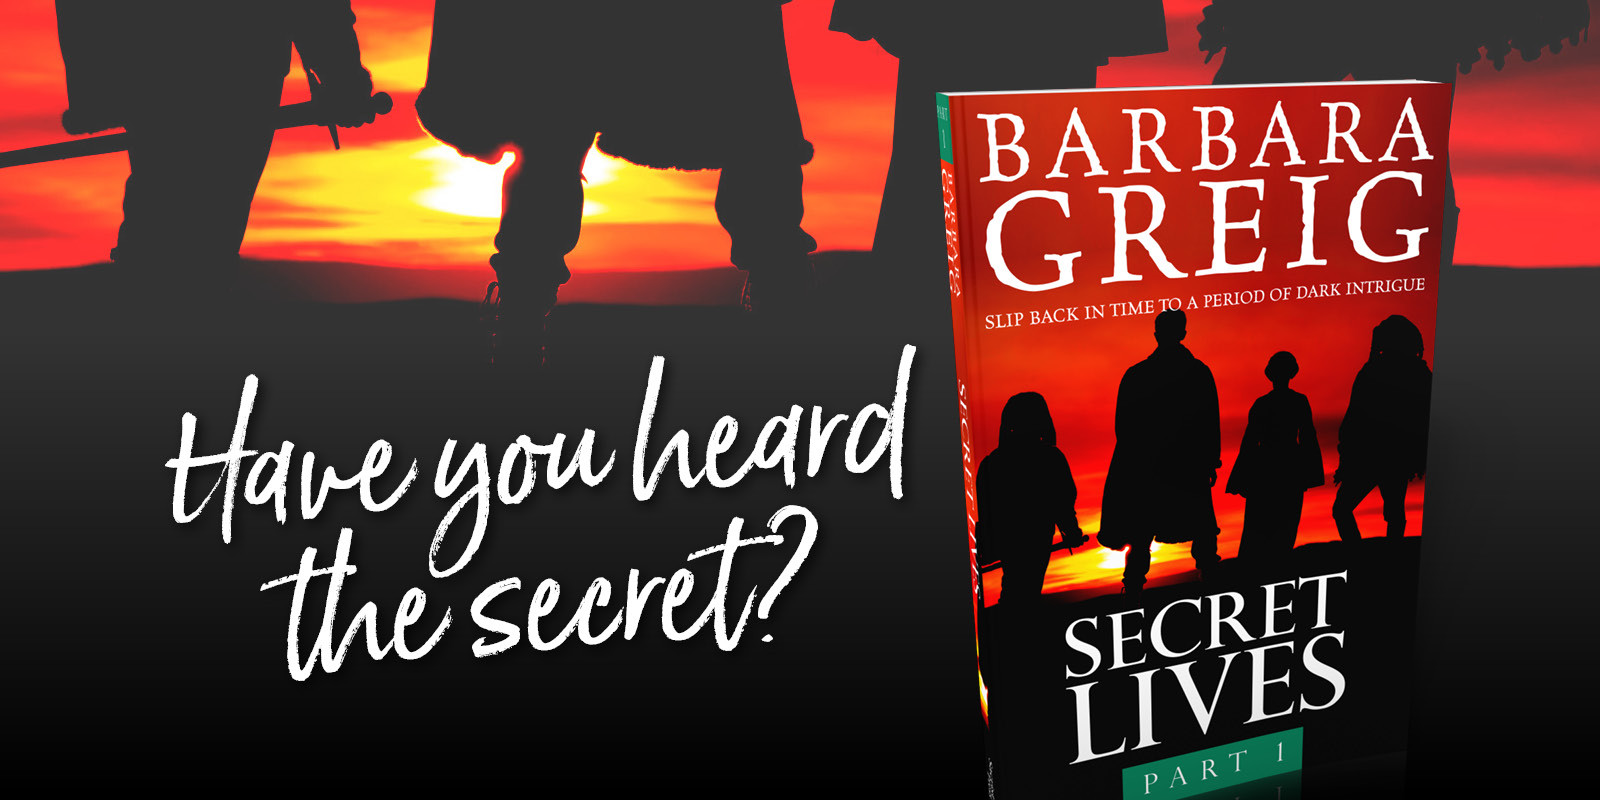 Secret Lives. Have you heard the secret?